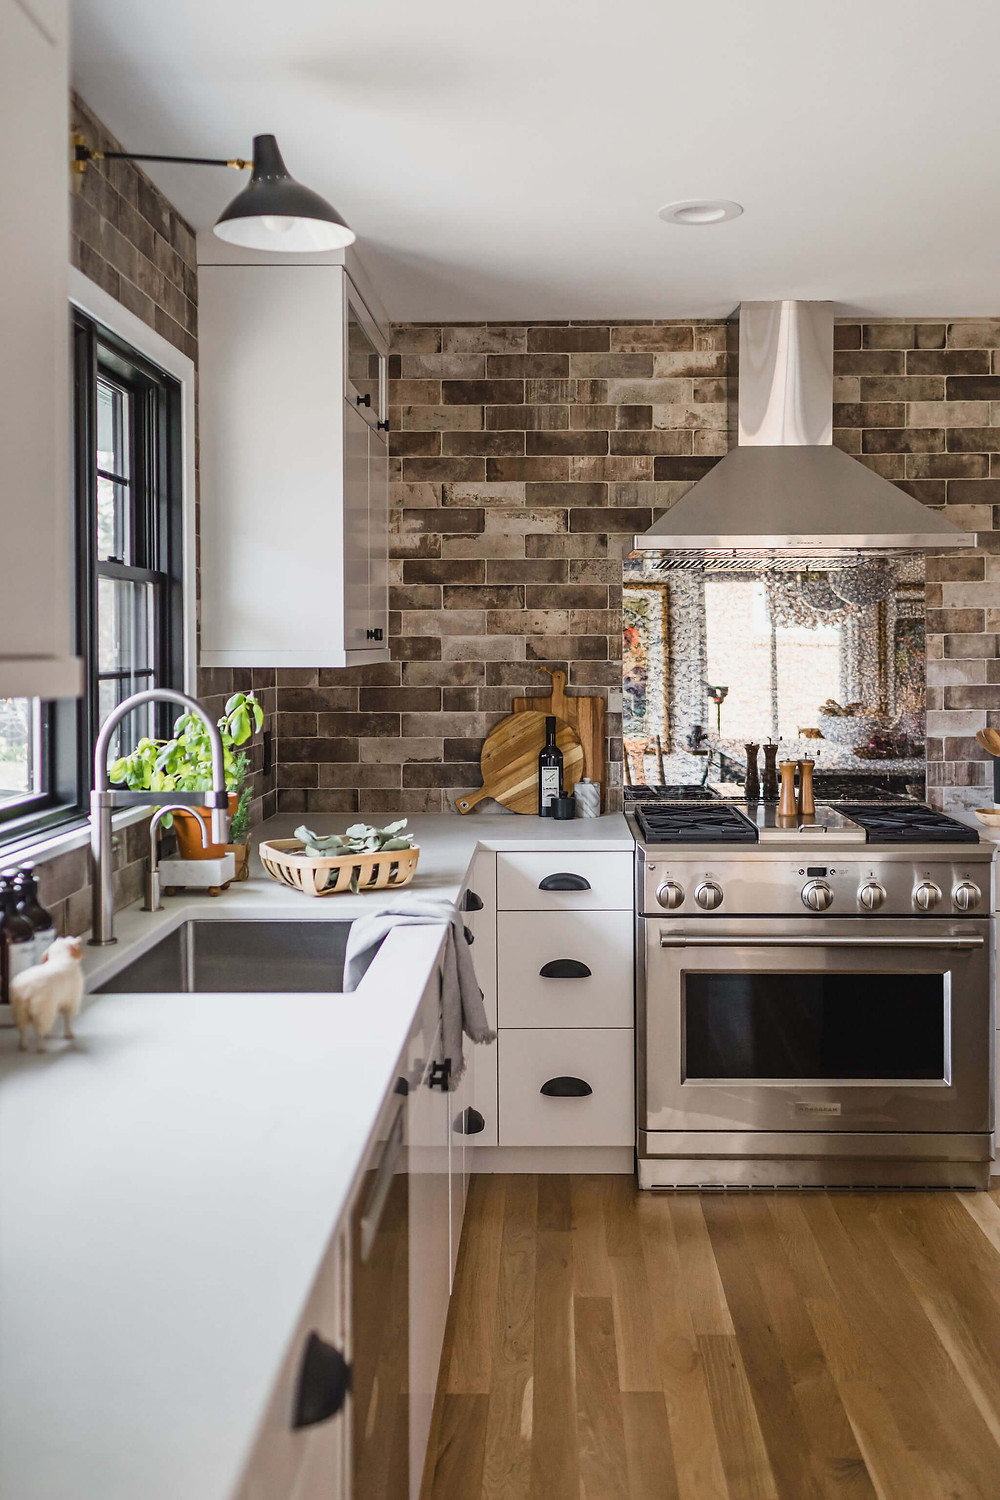 Contemporary industrial black and white kitchen with brick porcelain tile backsplash, custom cabinetry, stainless steel appliances, exposed range hood and antique mirror backsplash